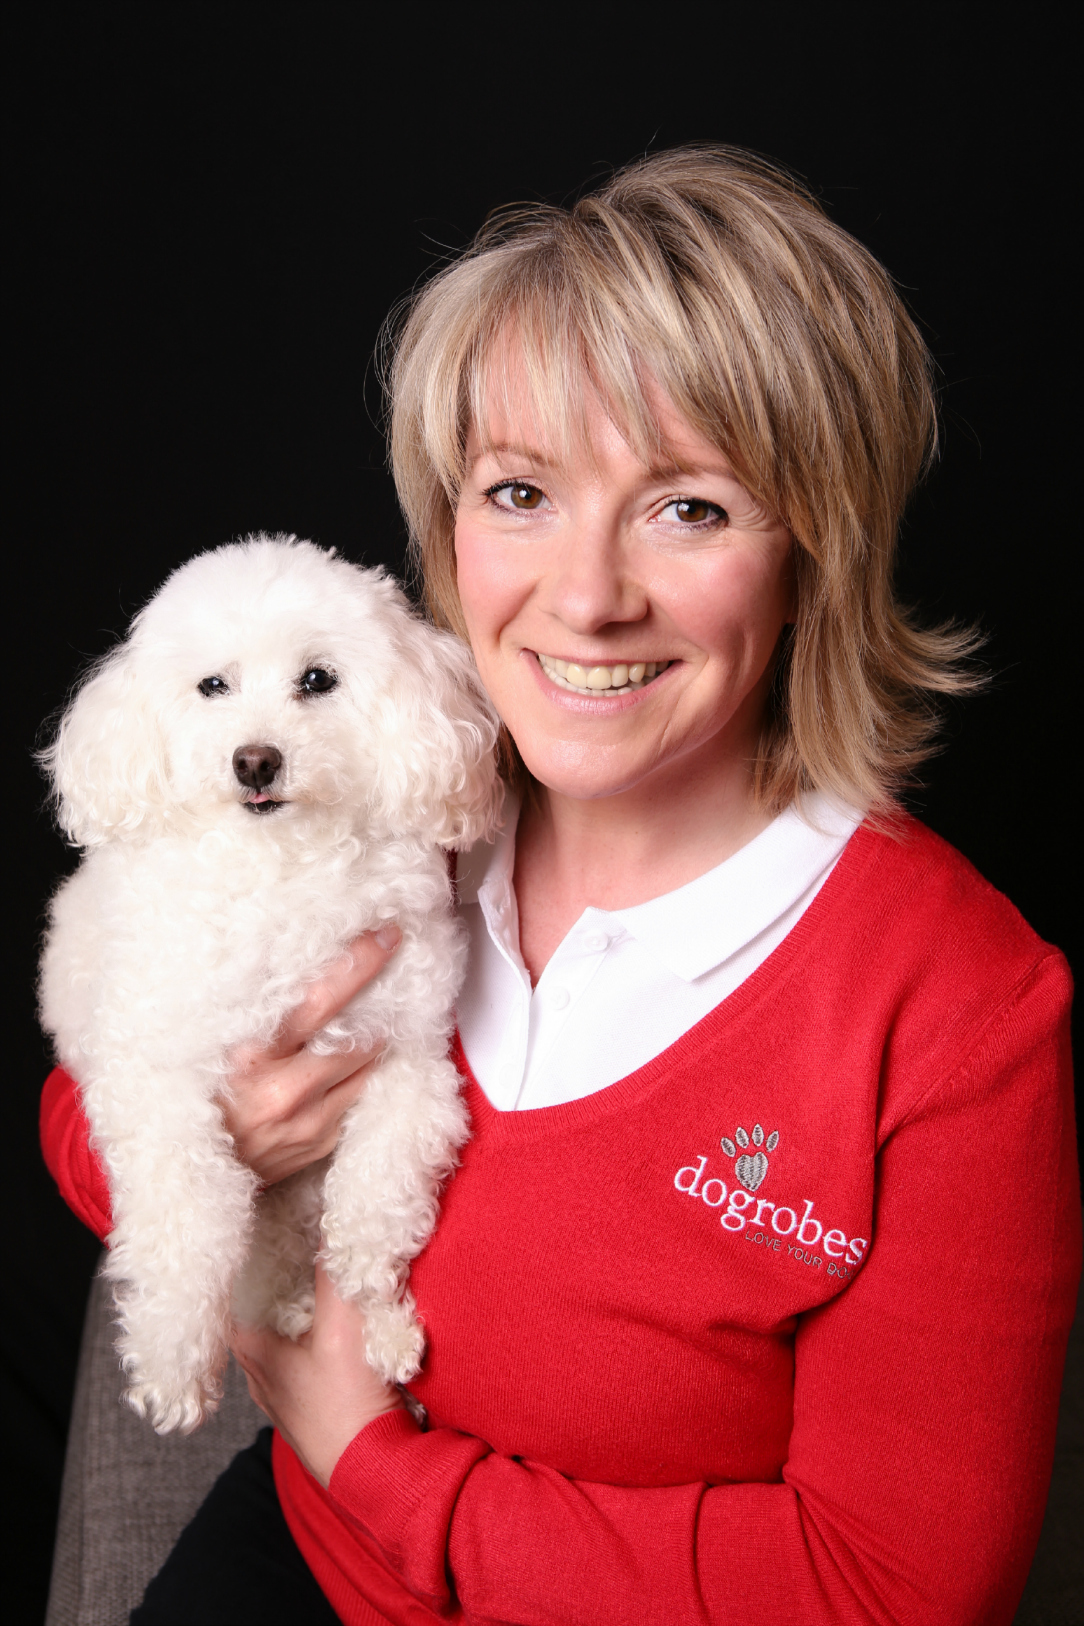 Dogrobes owner Margaret Reynolds with poodle Missy